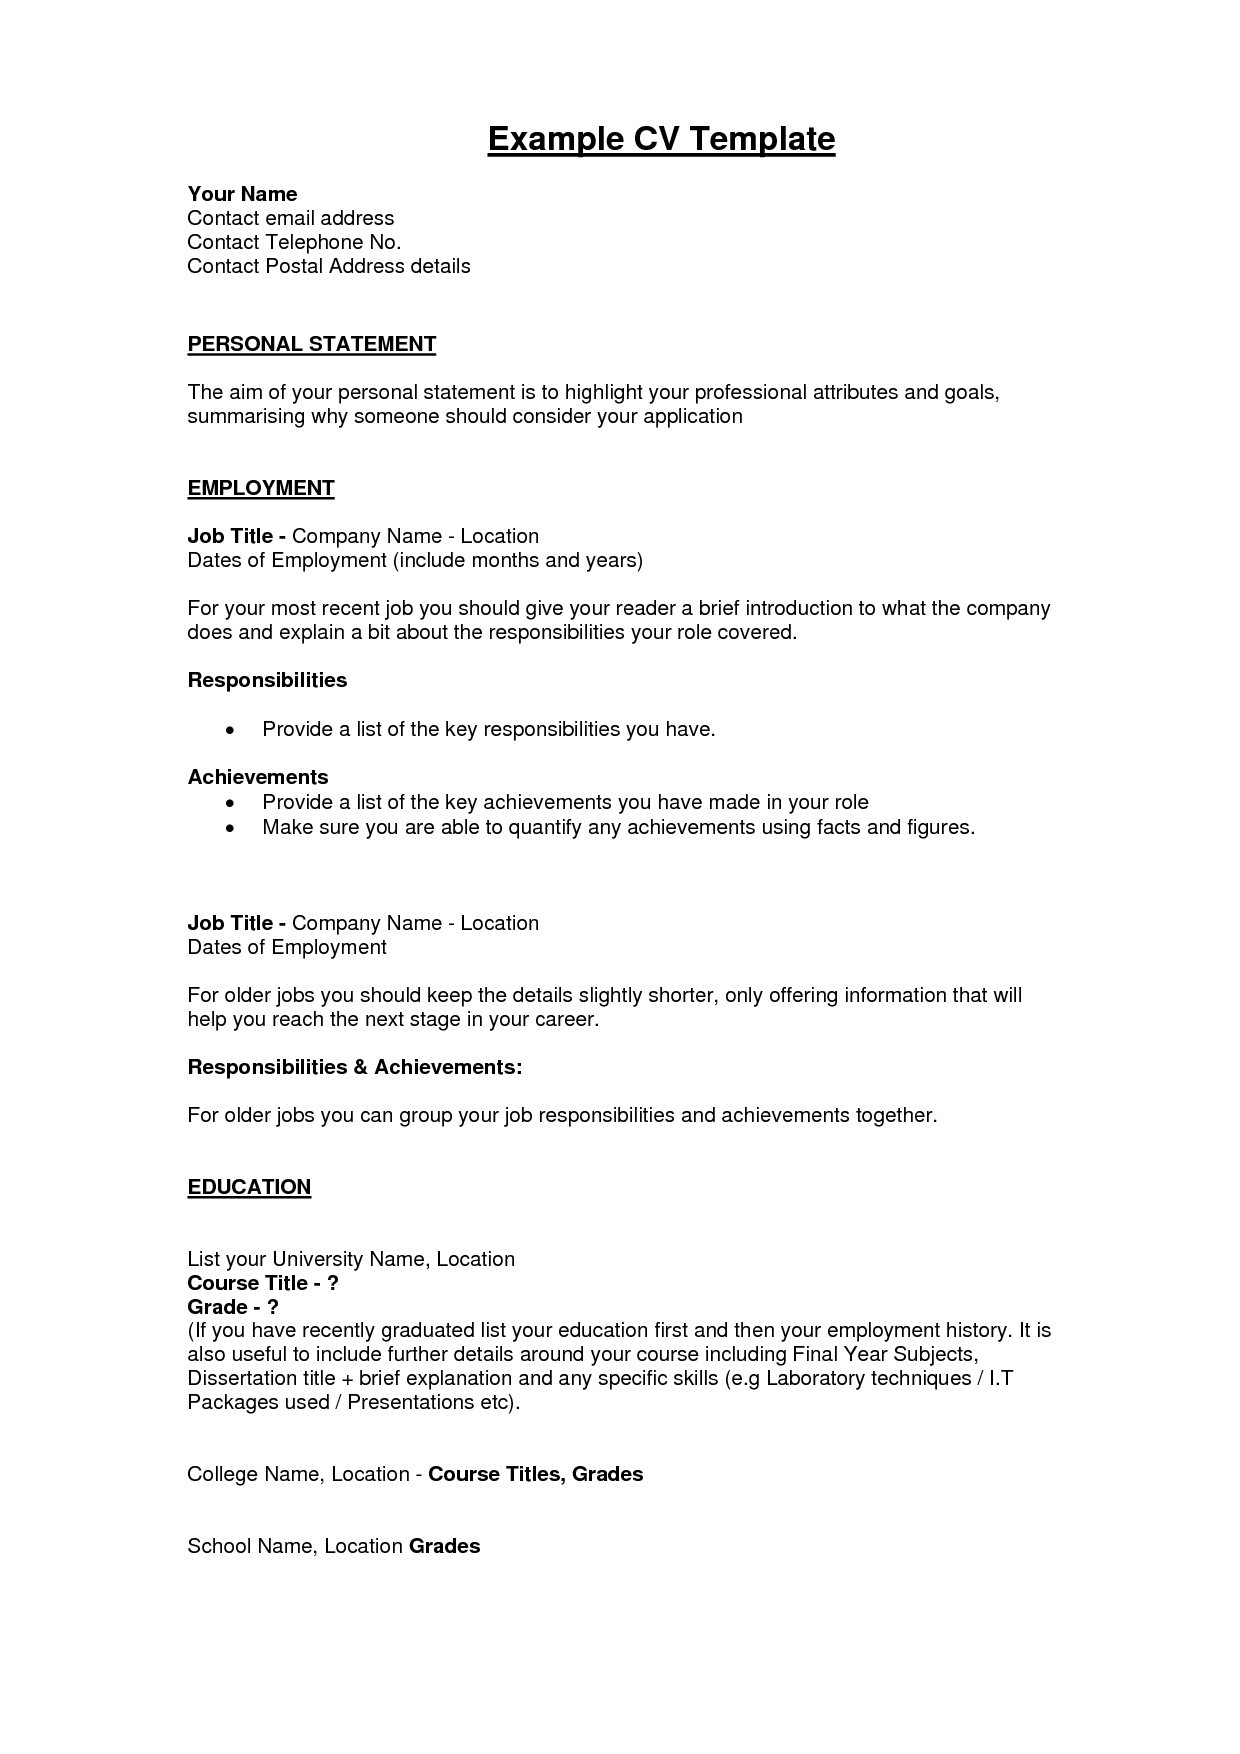 writing the perfect resume Collection-Writing the Perfect Resume Lovely New Examples Resumes Ecologist Resume 0d How to Write A Proper 12-i